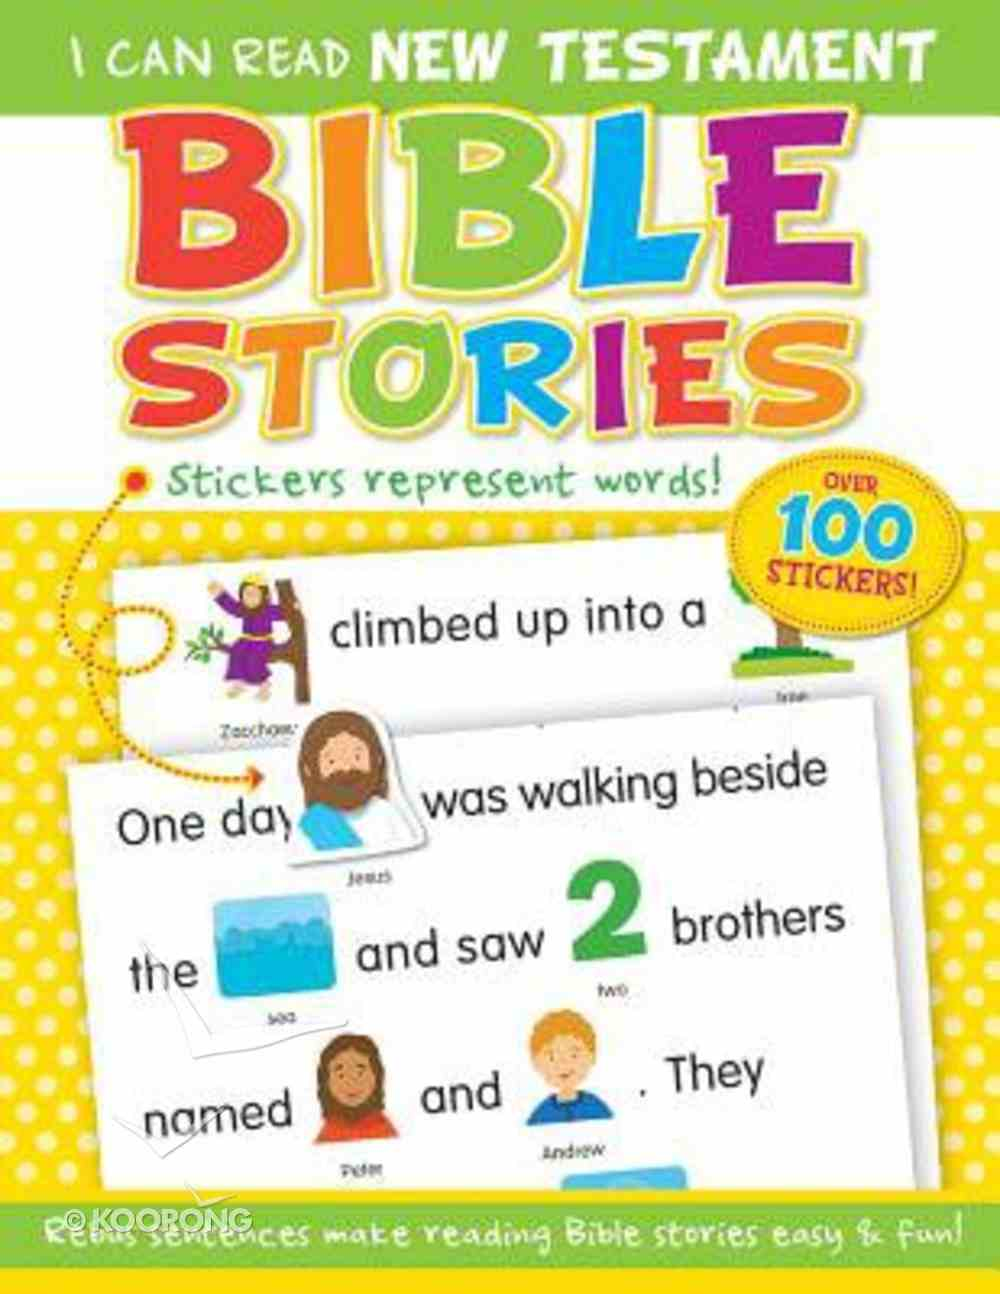 New Testament Bible Stories (With Over 100 Stickers) (I Can Read Series) Paperback